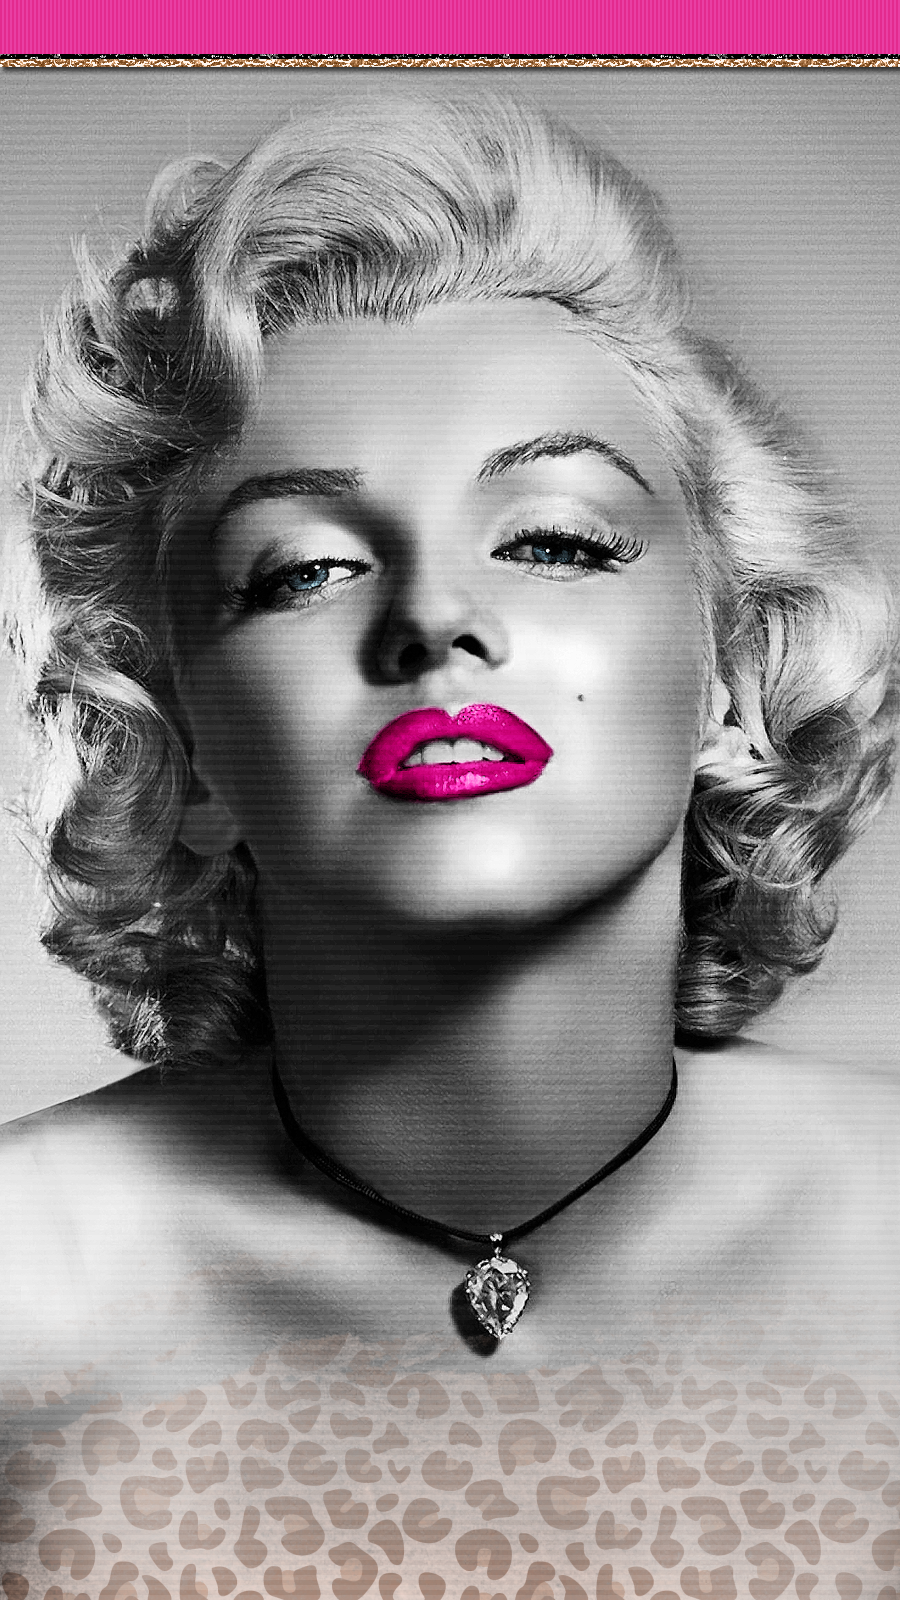 Wallpaper Of Marilyn Monroe You Know She Was Born 1 June So I Made The For Every People Who Love This Actress Can Use These